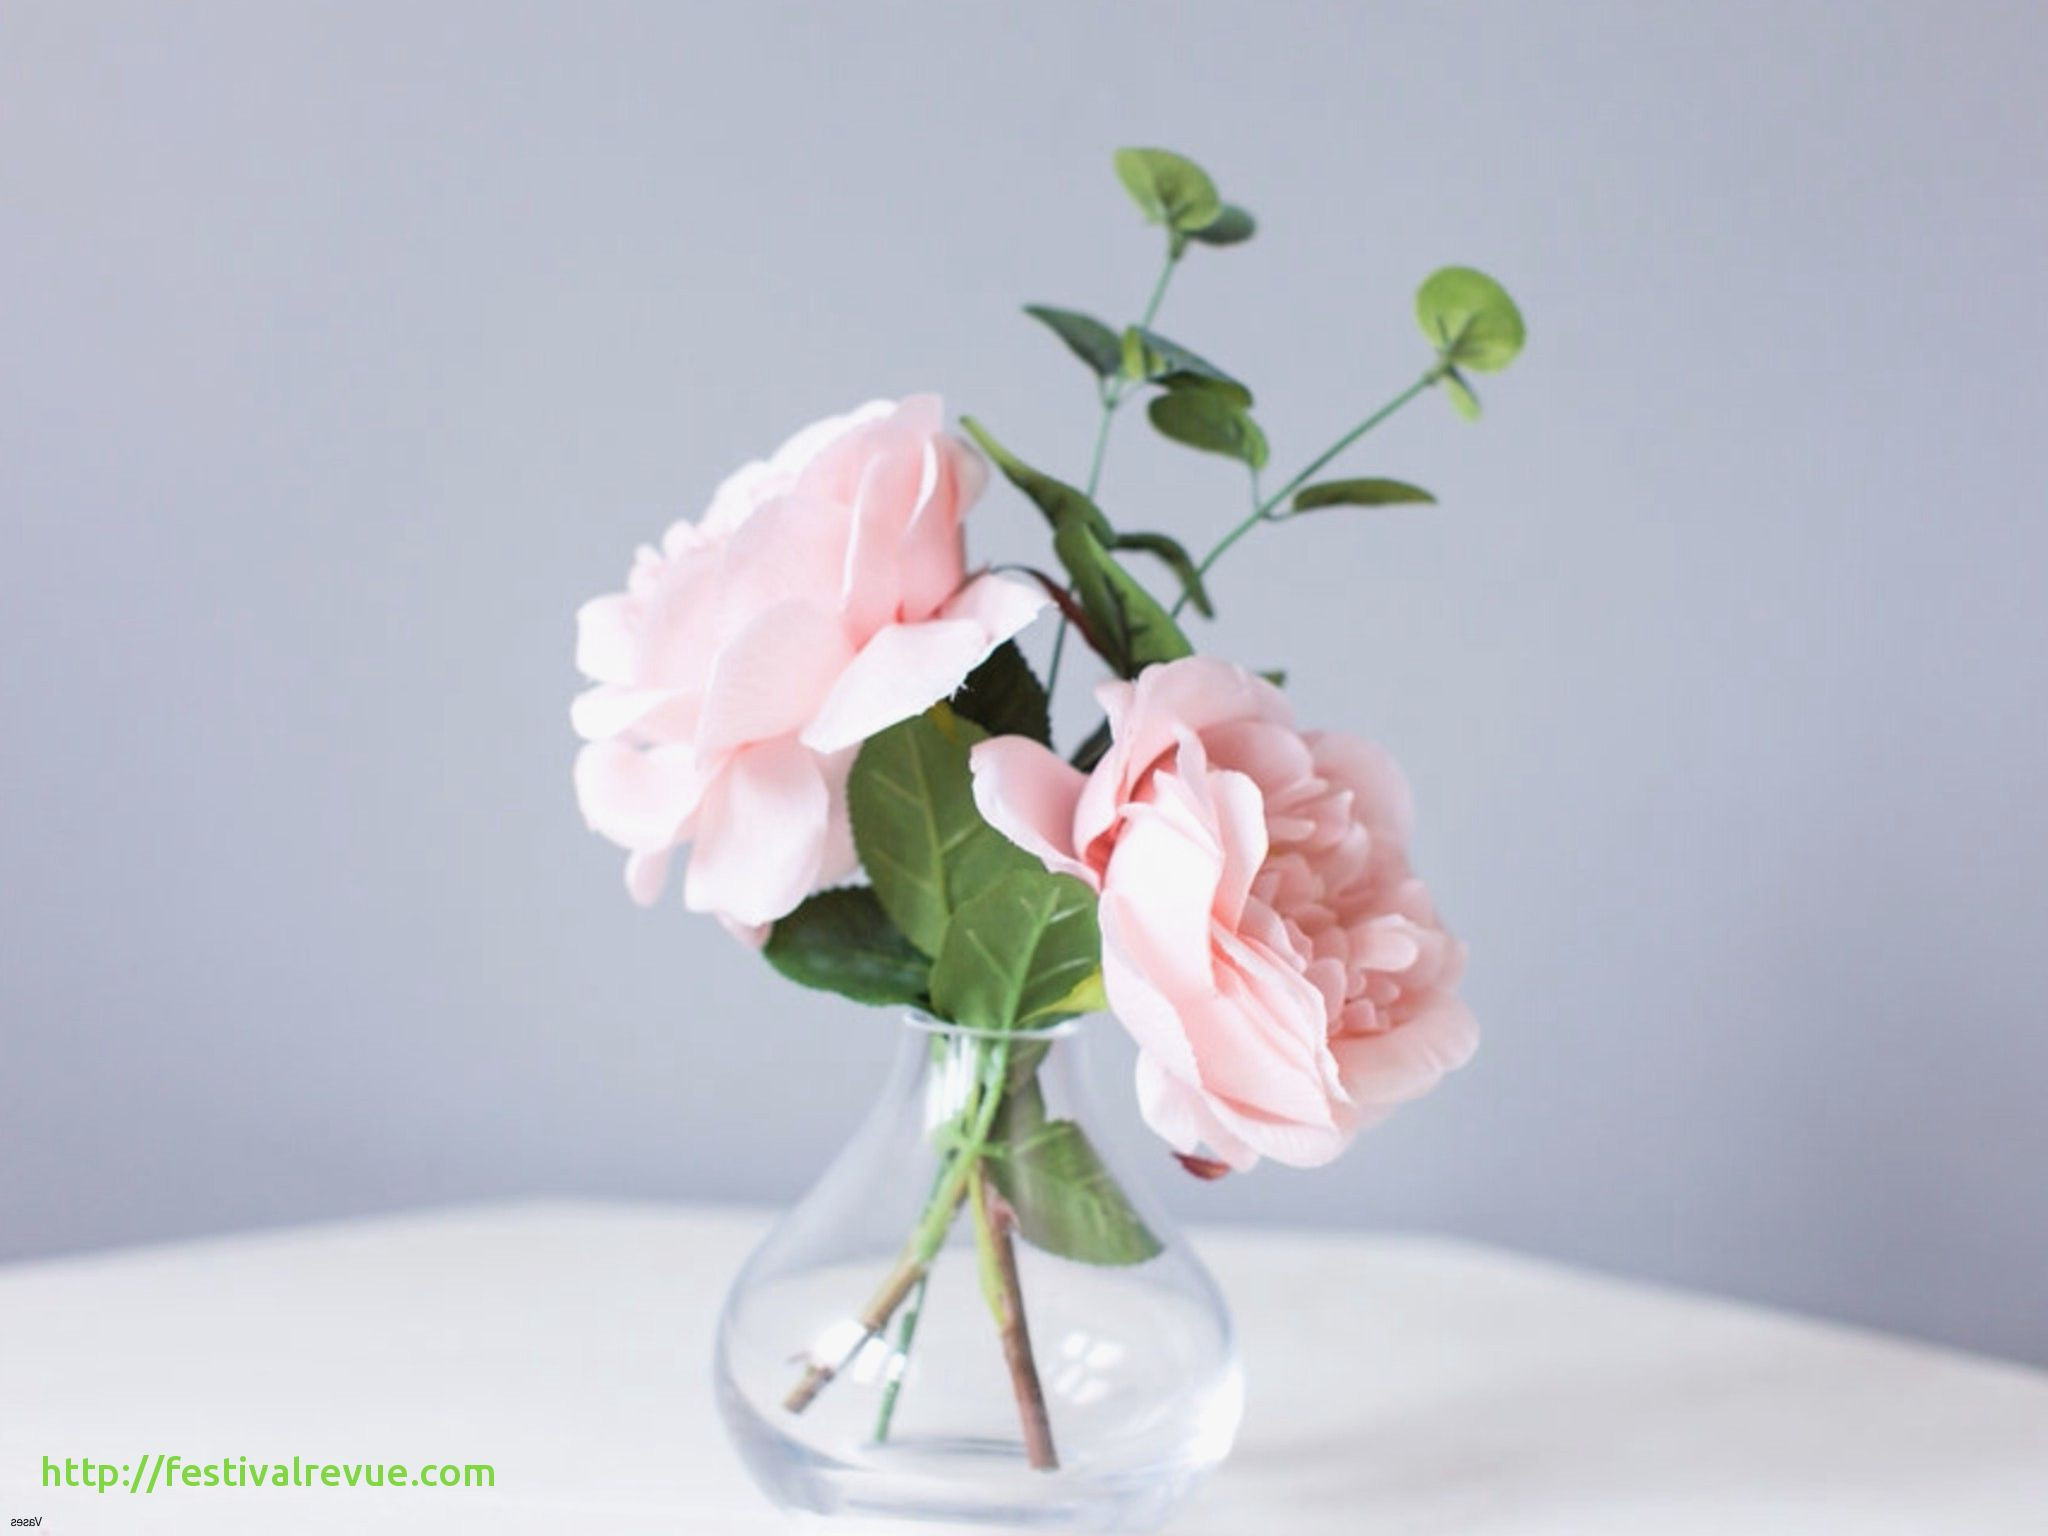 bud vase flowers of awesome white wallpaper with flowers and 6 pictures festivalrevue com pertaining to rose bud flower white wallpaper for 5s fresh h vases bud vase flower arrangements i 0d